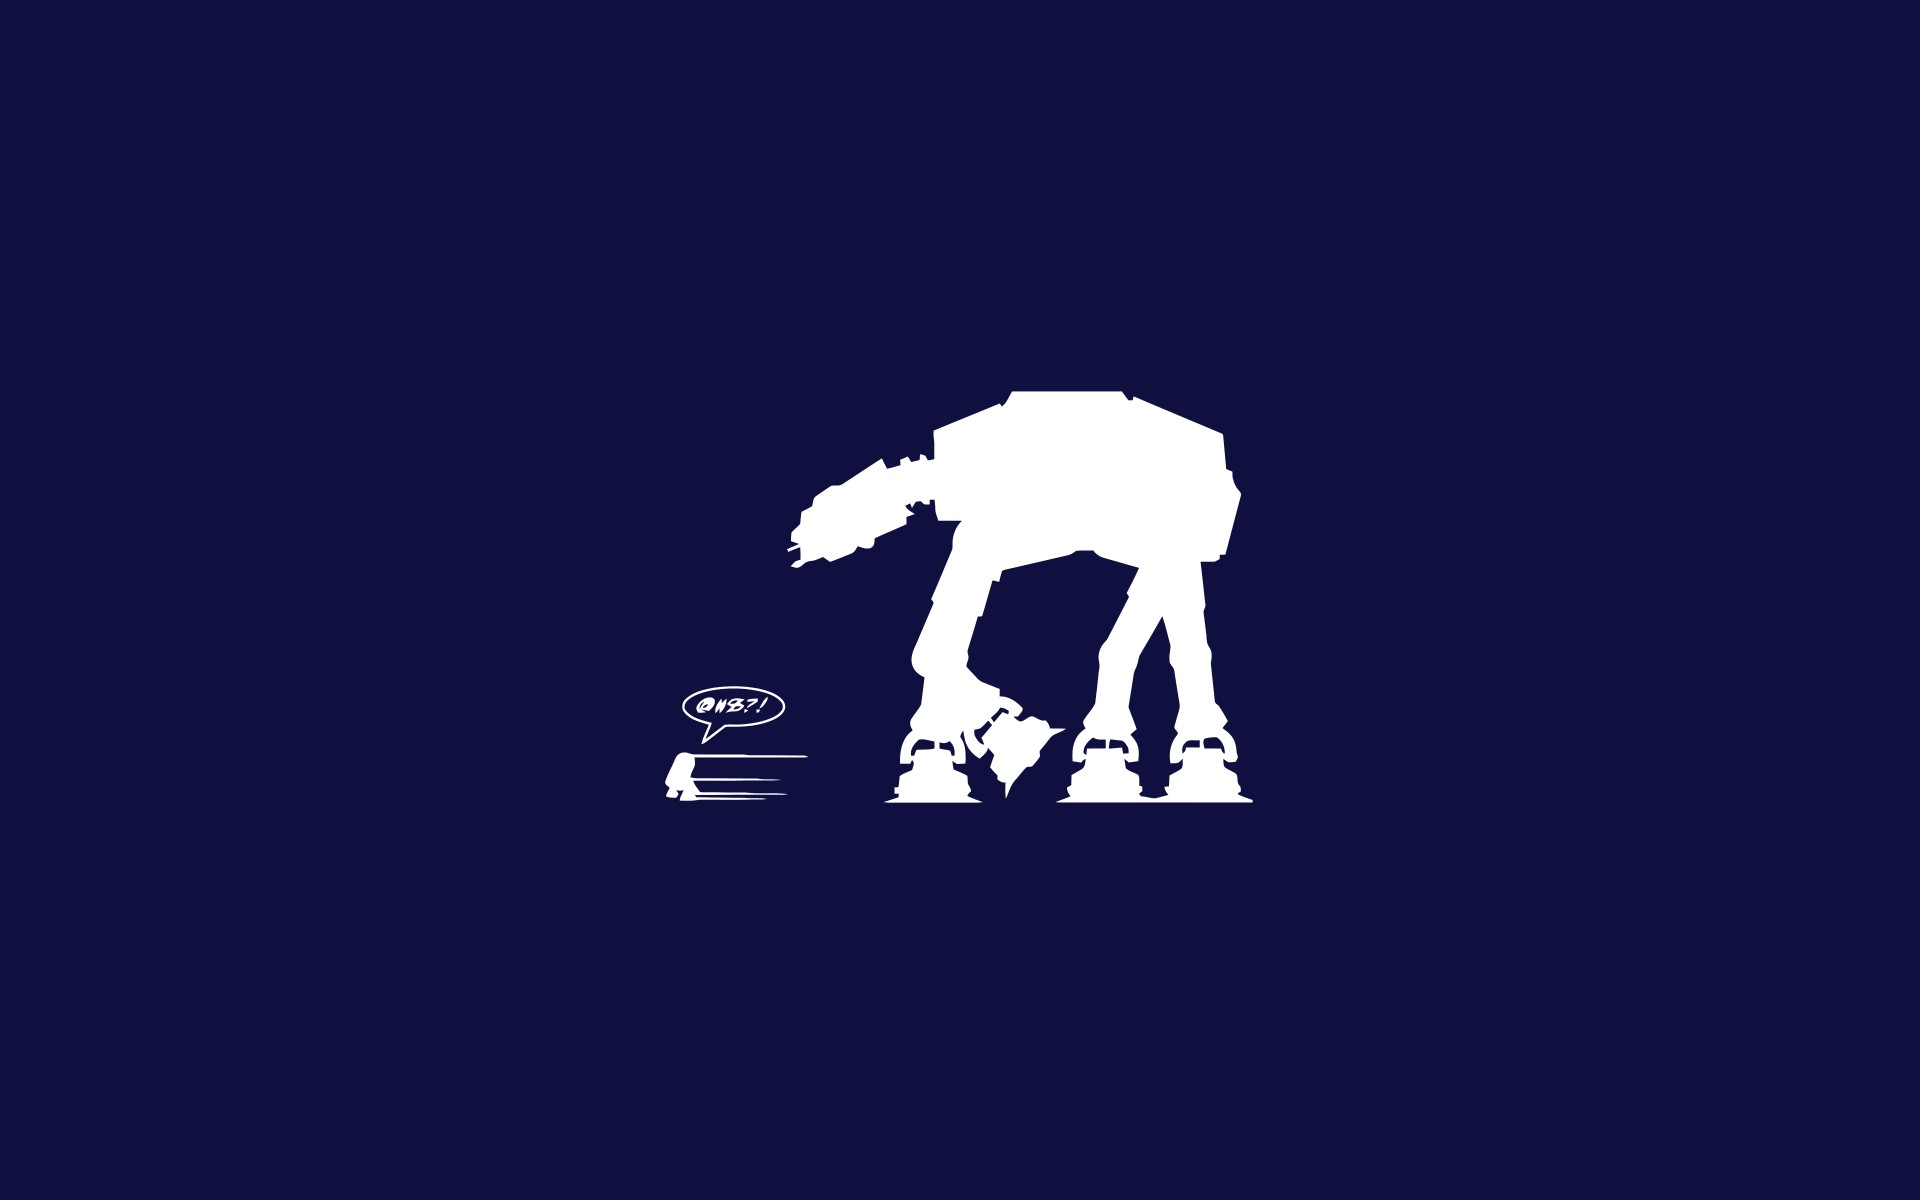 r2d2 wallpaper ·① download free hd backgrounds for desktop and